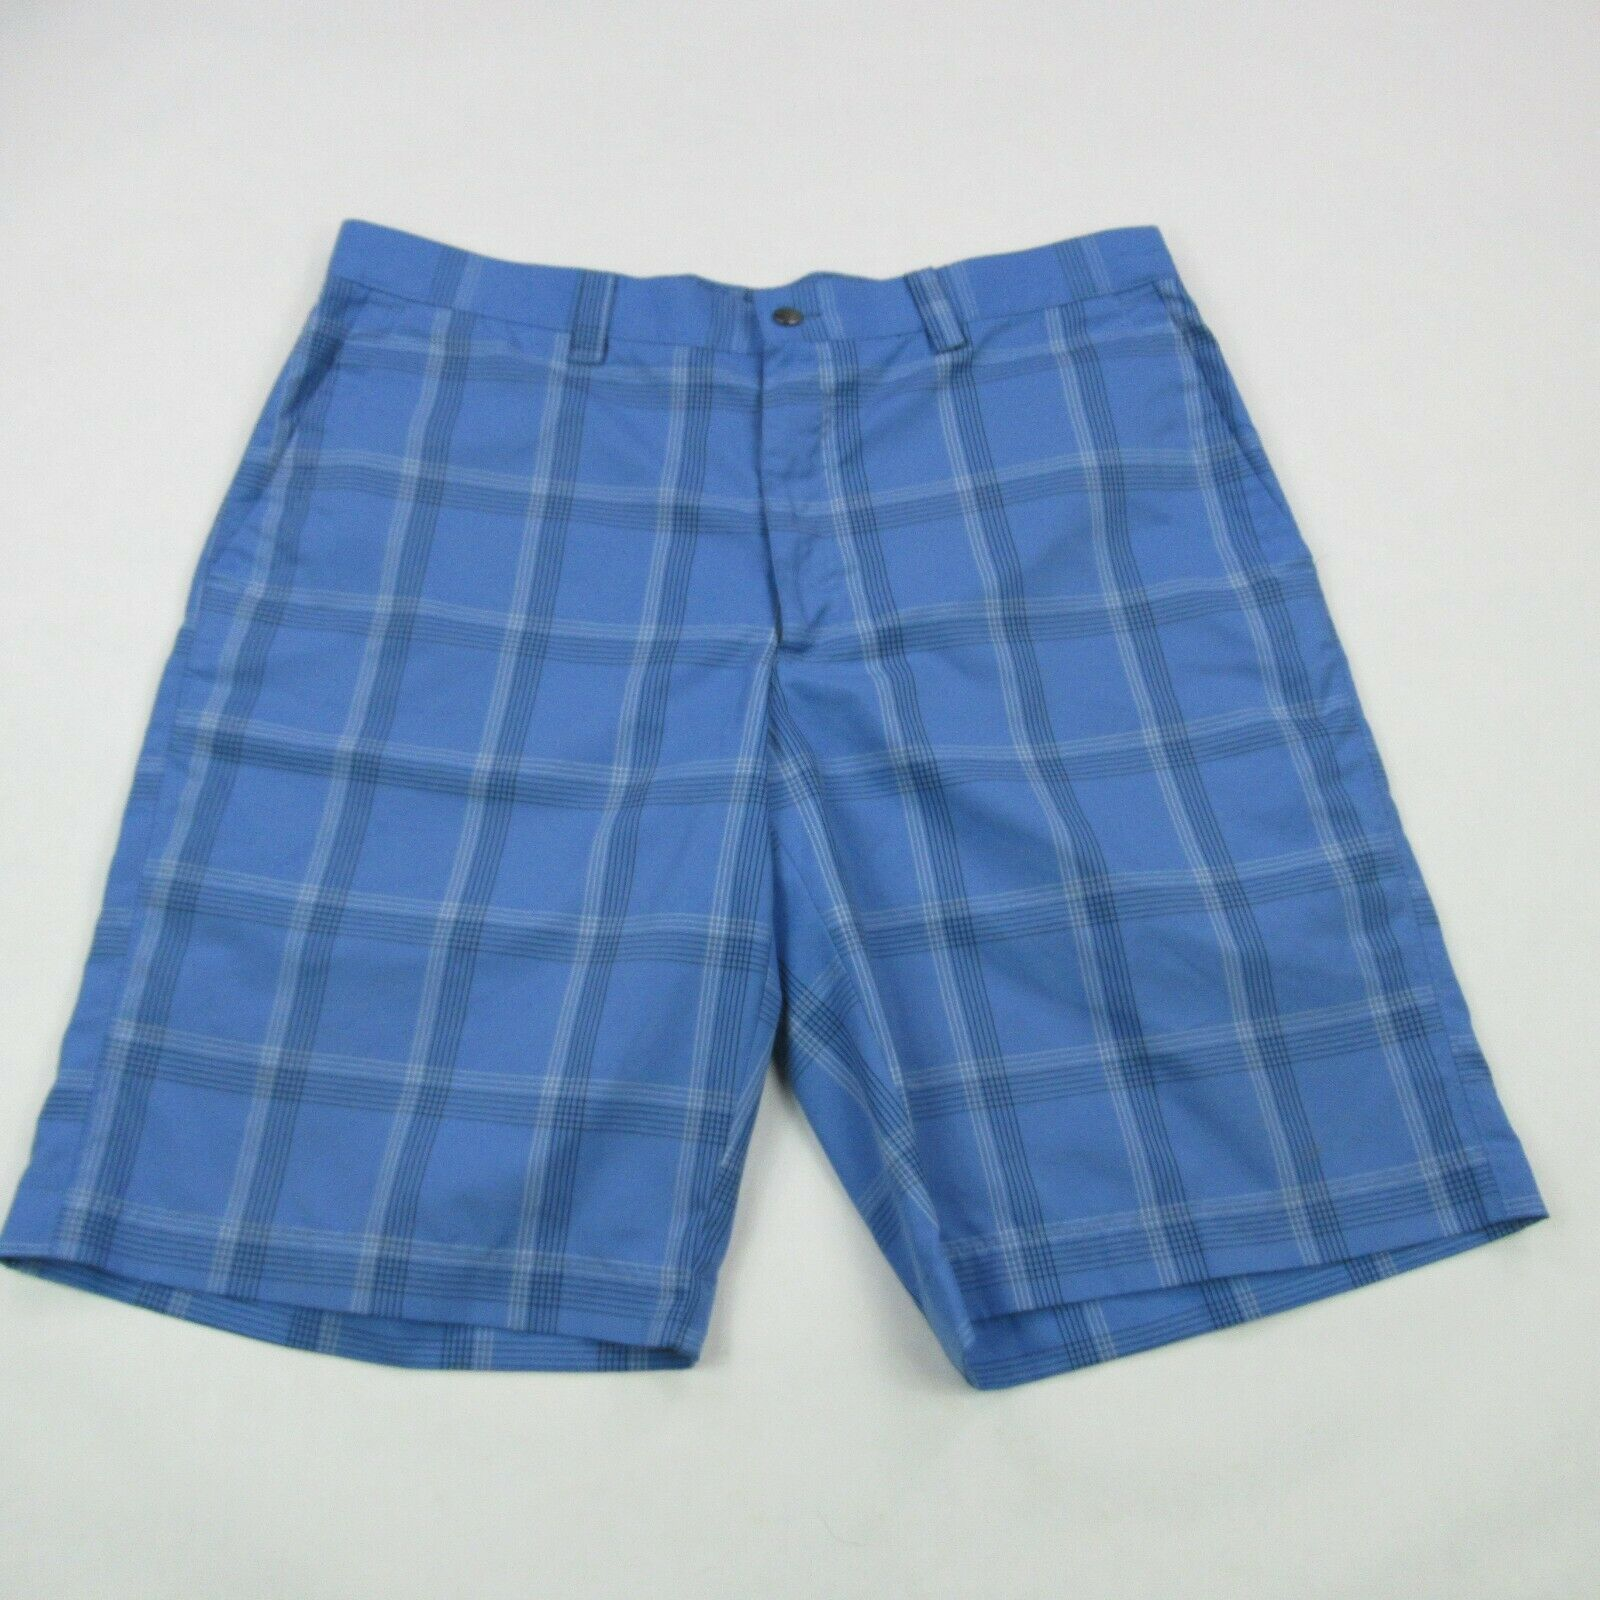 Product Image 1 - Callaway Golf Shorts Men's Size